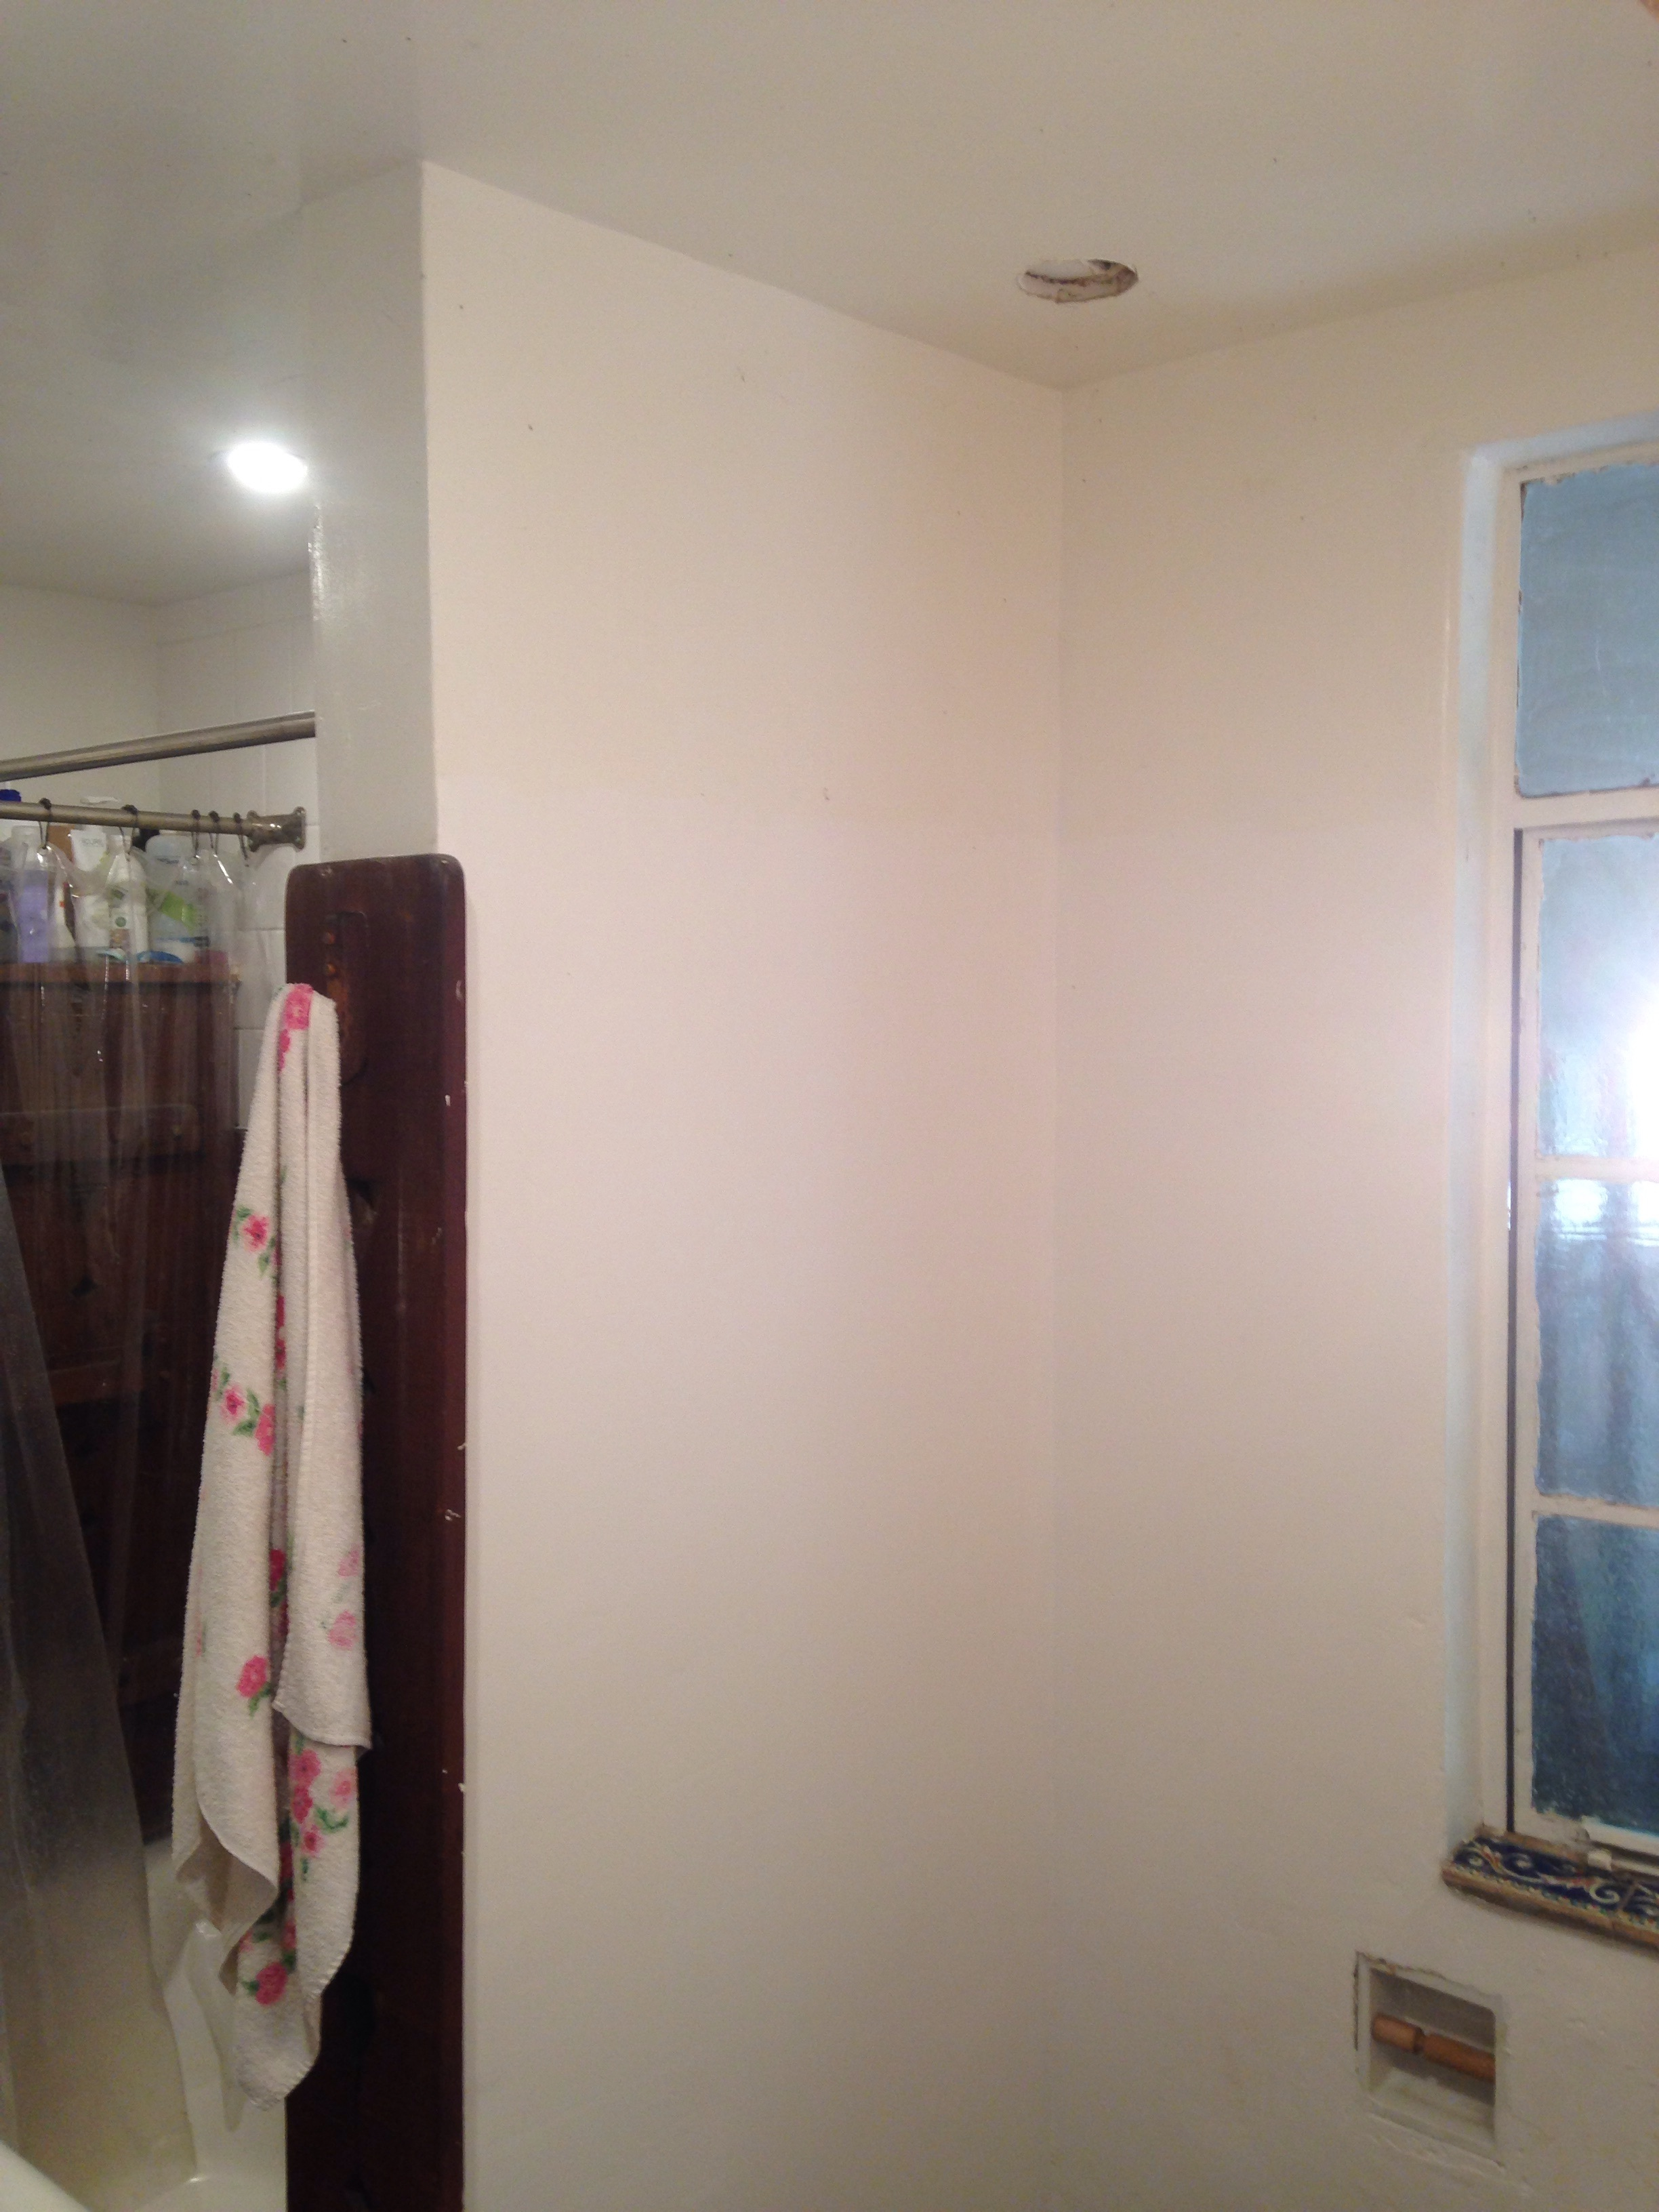 Corner near the shower... The fan shouldn't be directly above the shower or the moisture will damage it